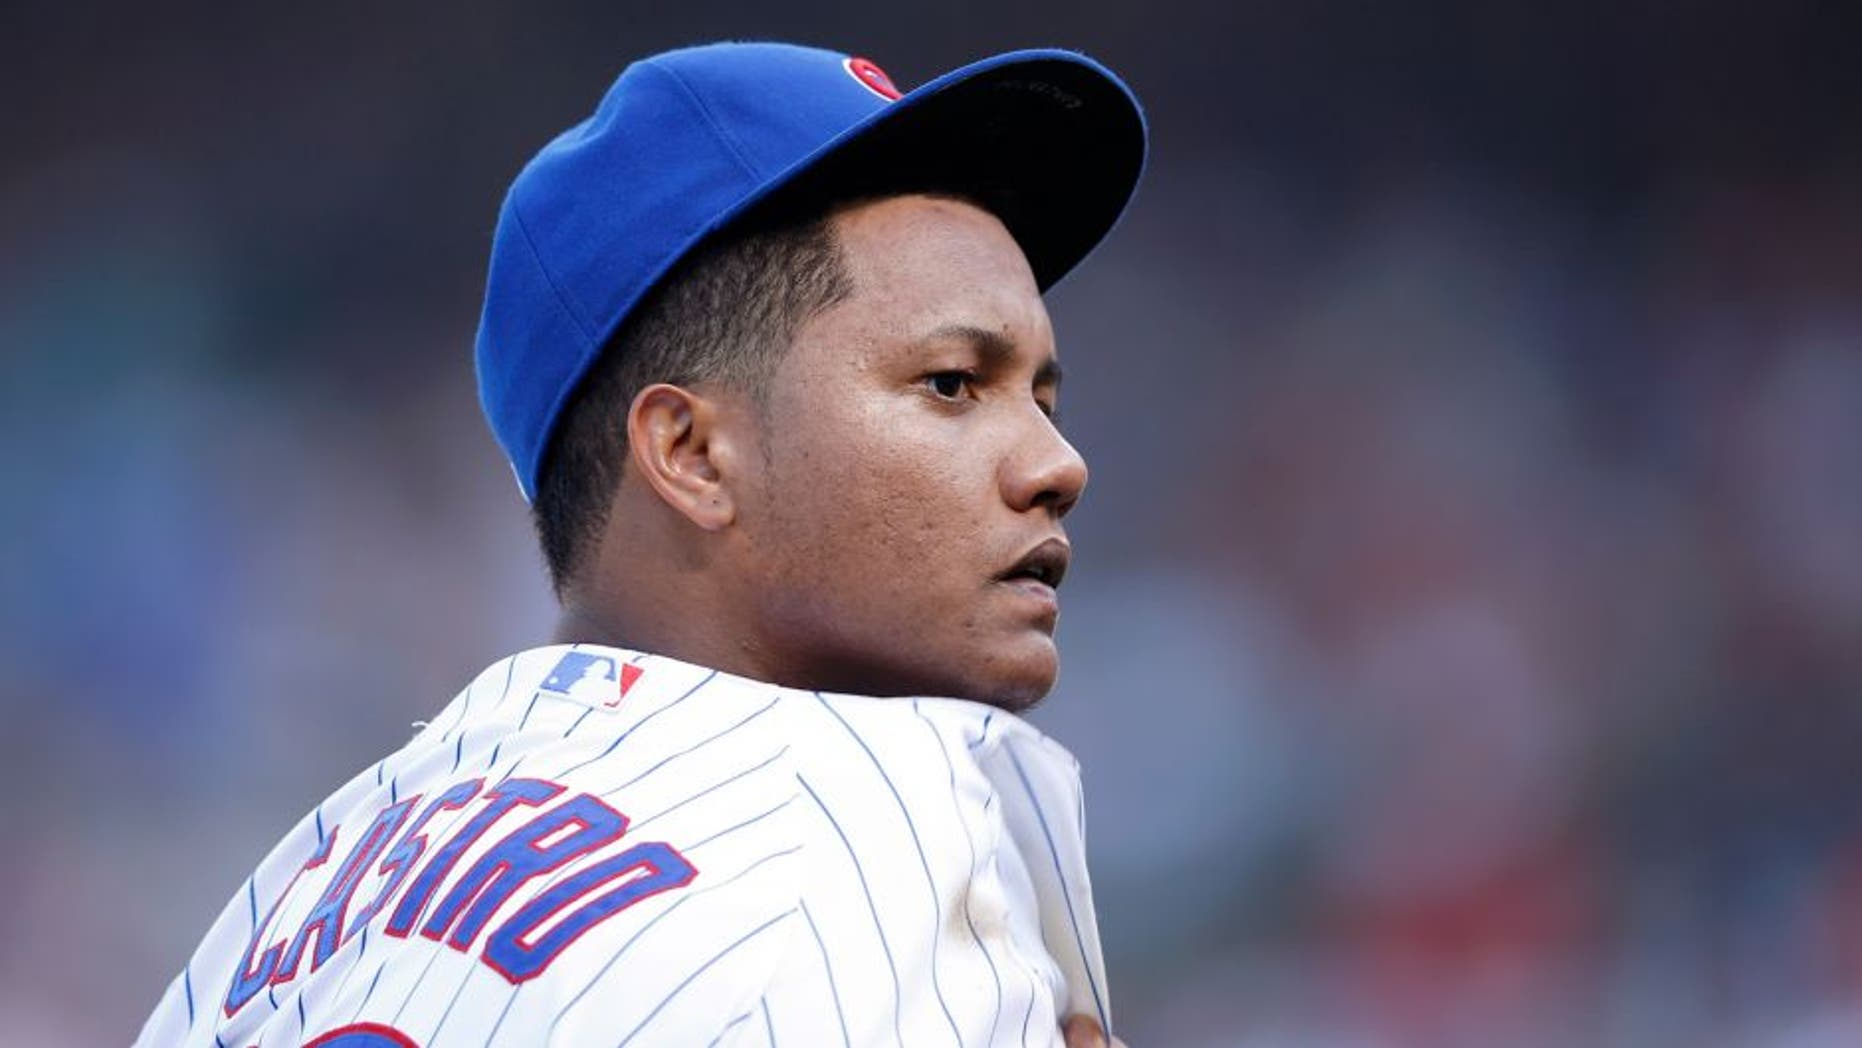 CHICAGO, IL - JULY 25: Starlin Castro #13 of the Chicago Cubs looks on during the game against the Philadelphia Phillies at Wrigley Field on July 25, 2015 in Chicago, Illinois. The Phillies defeated the Cubs 5-0. (Photo by Joe Robbins/Getty Images)